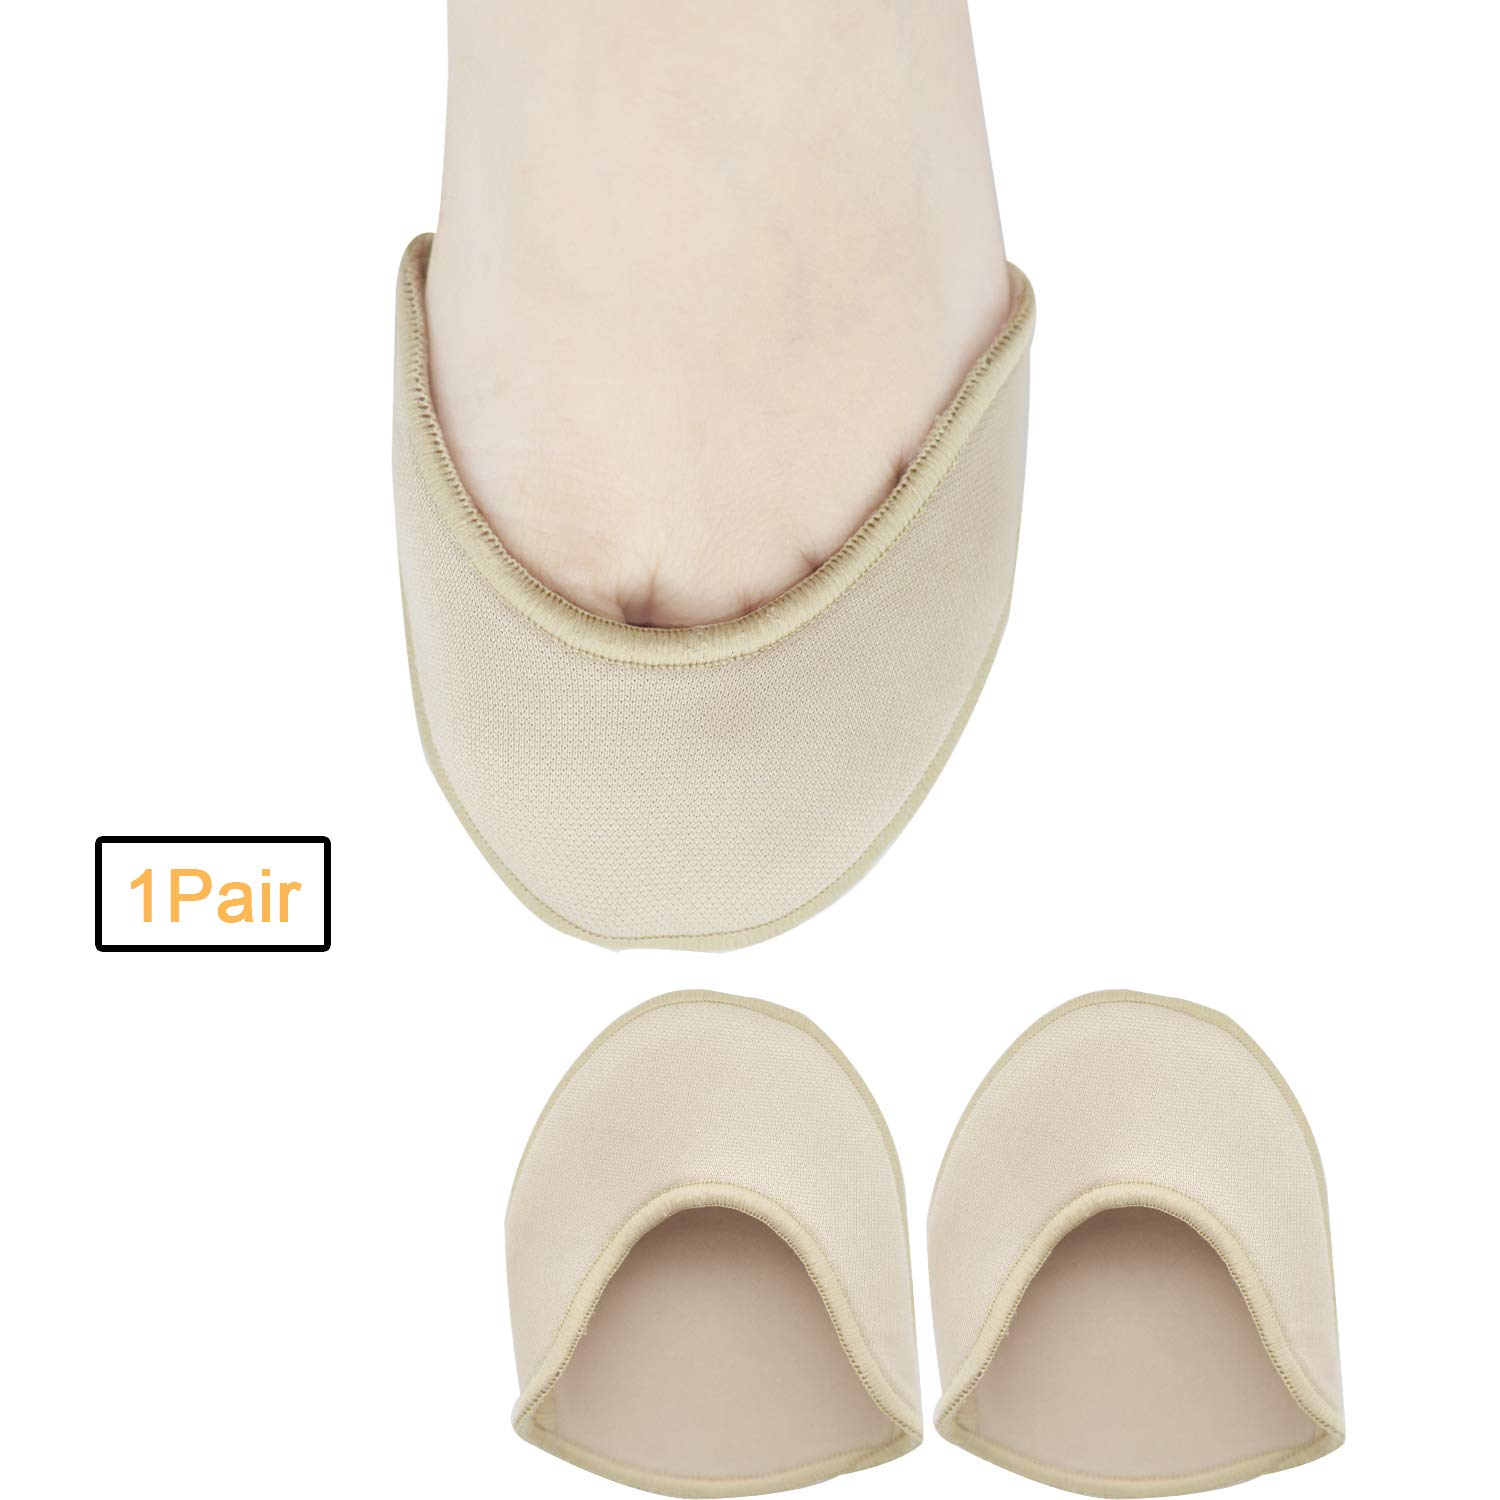 Toe Pouches Pads, Ouch Pouch to Protect Toe, Gel Toe Cover for Women's 6-10 for Heel, Ballet, Point Shoes - 1 Pairs